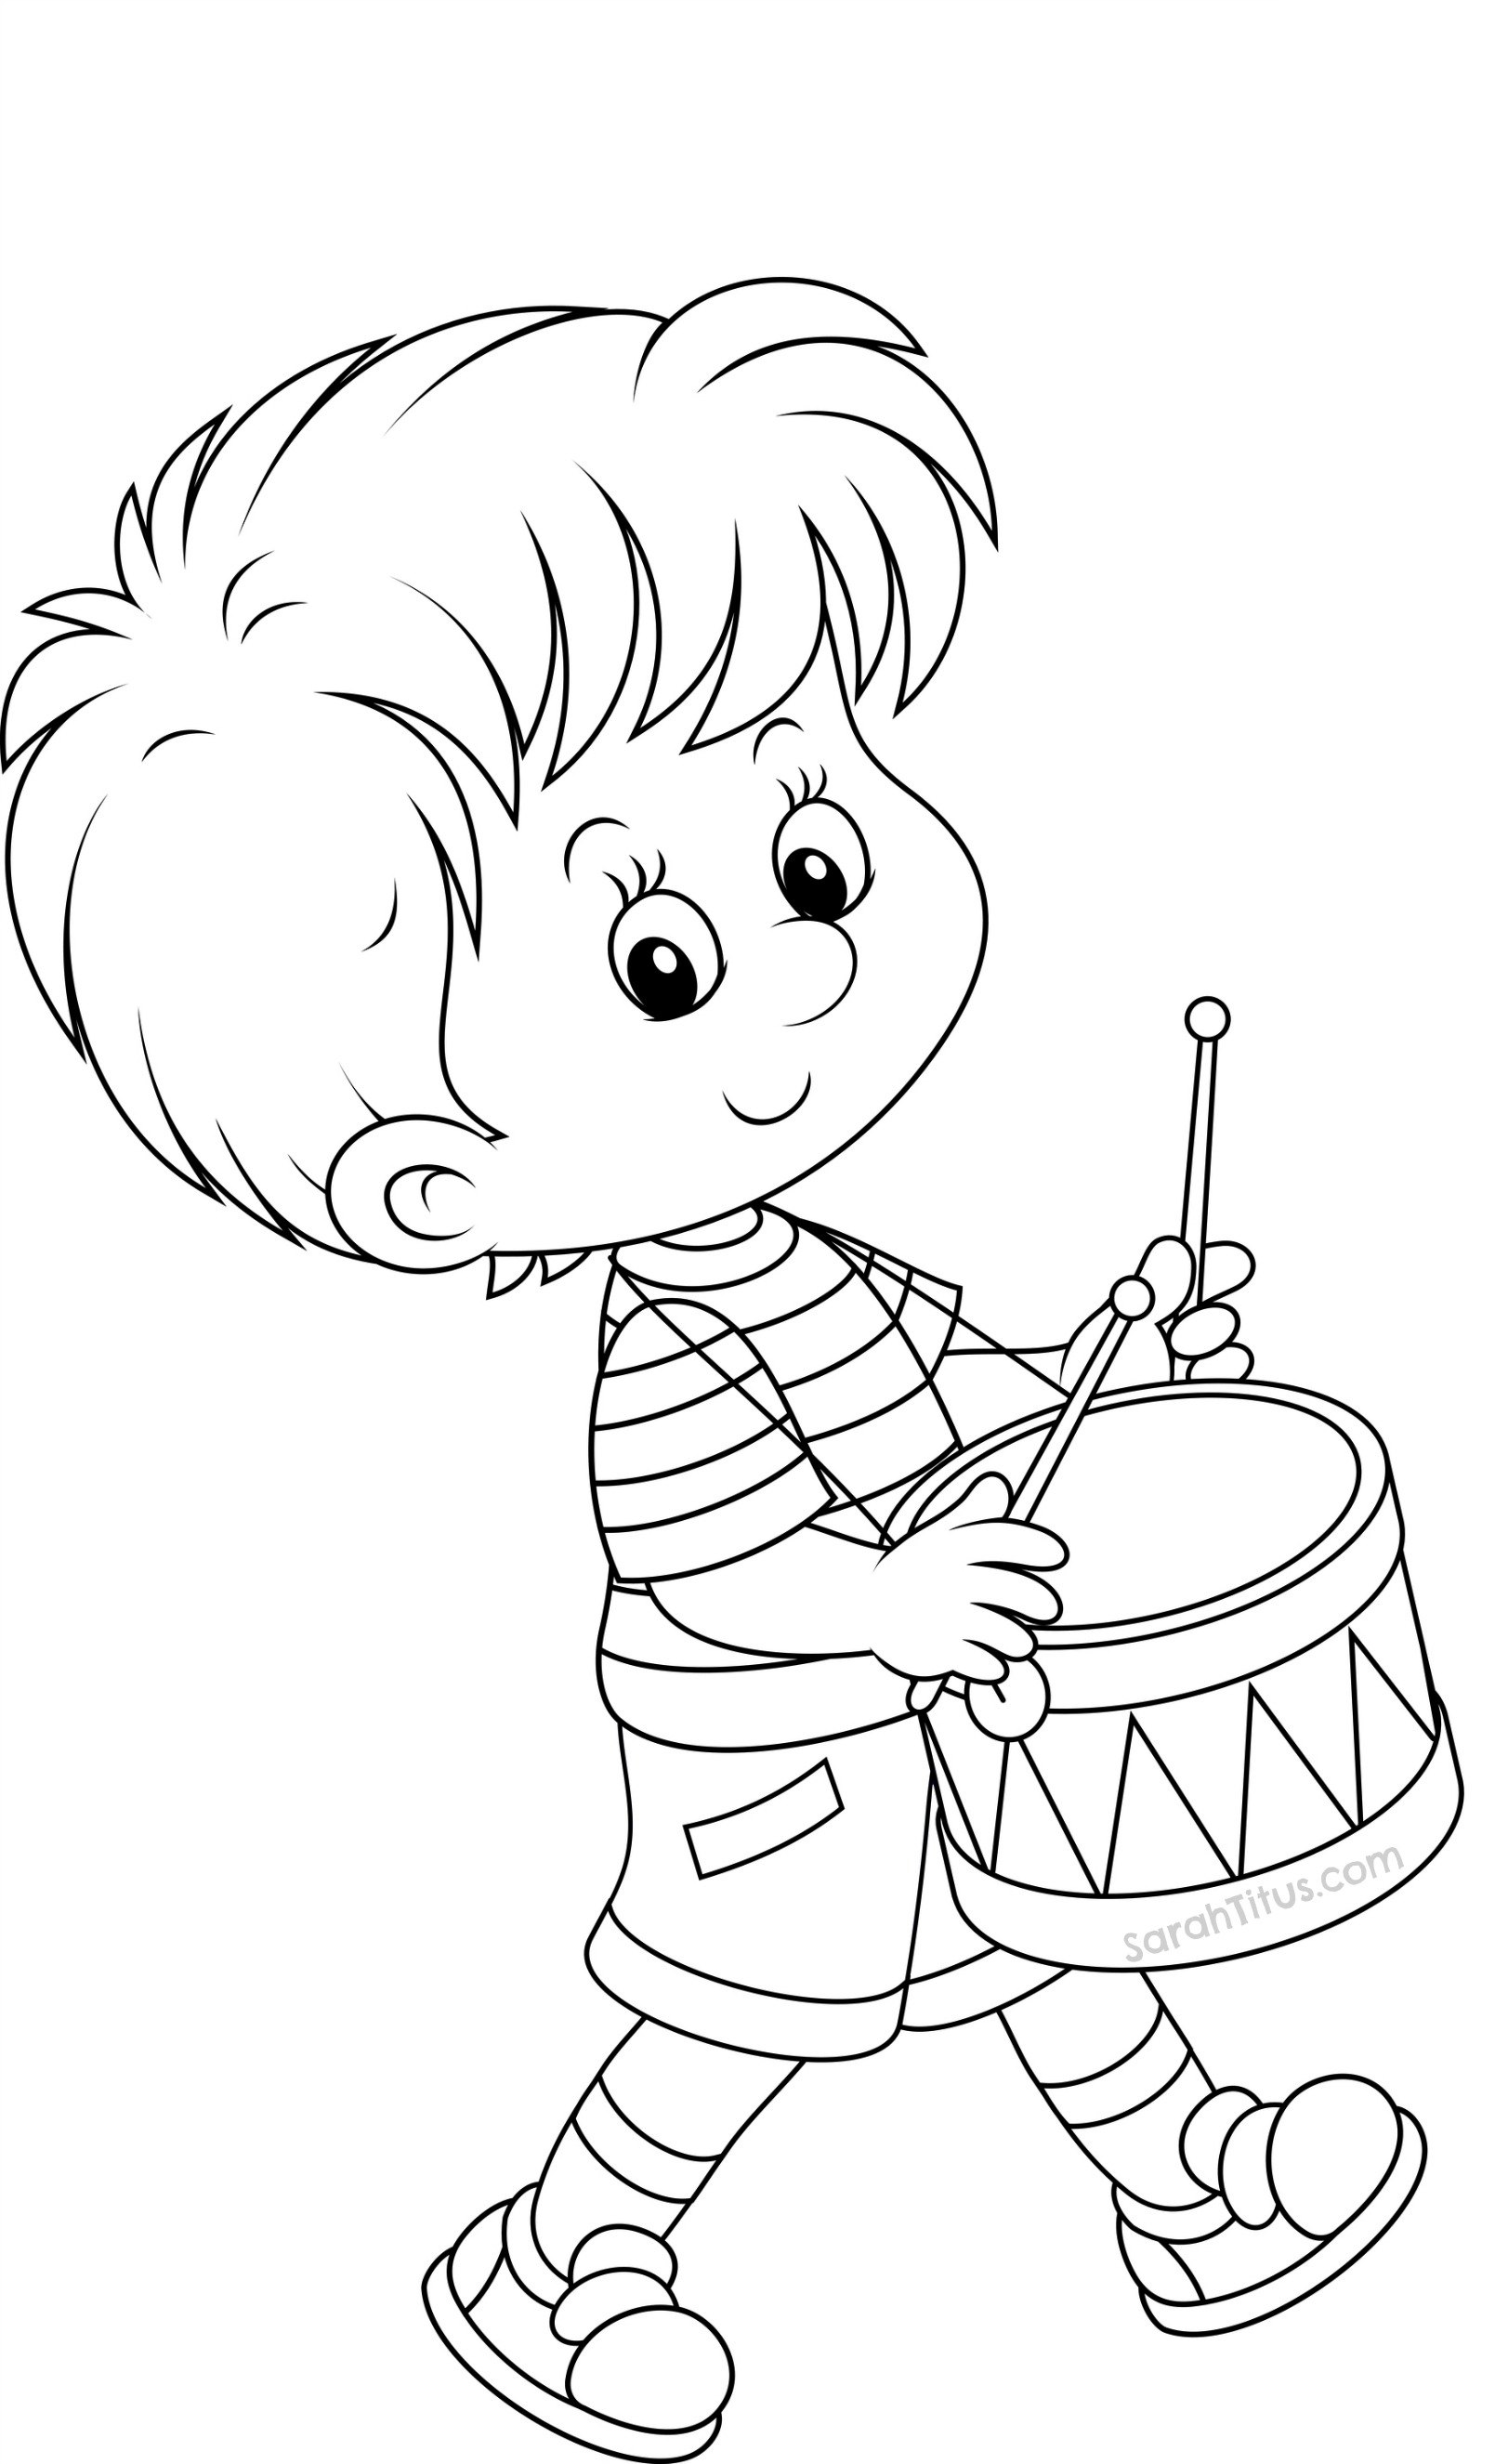 back to school coloring pages - Coloring For Boys